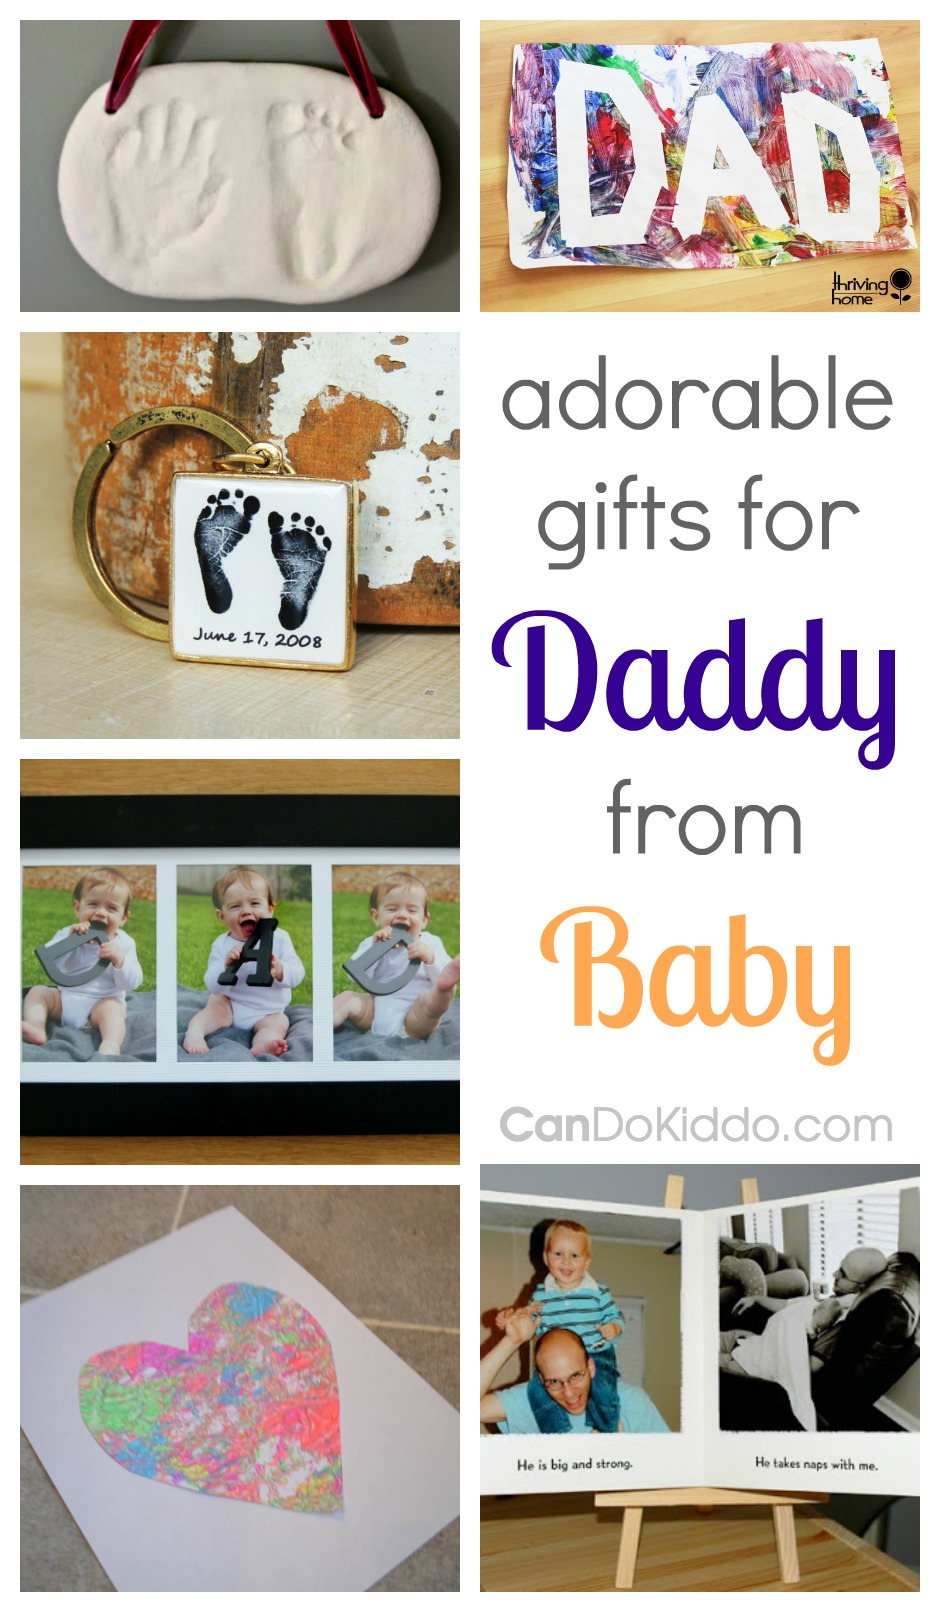 Adorable fathers day gifts for Dad. DIY and personal gifts For Daddy from Baby. CanDo Kiddo